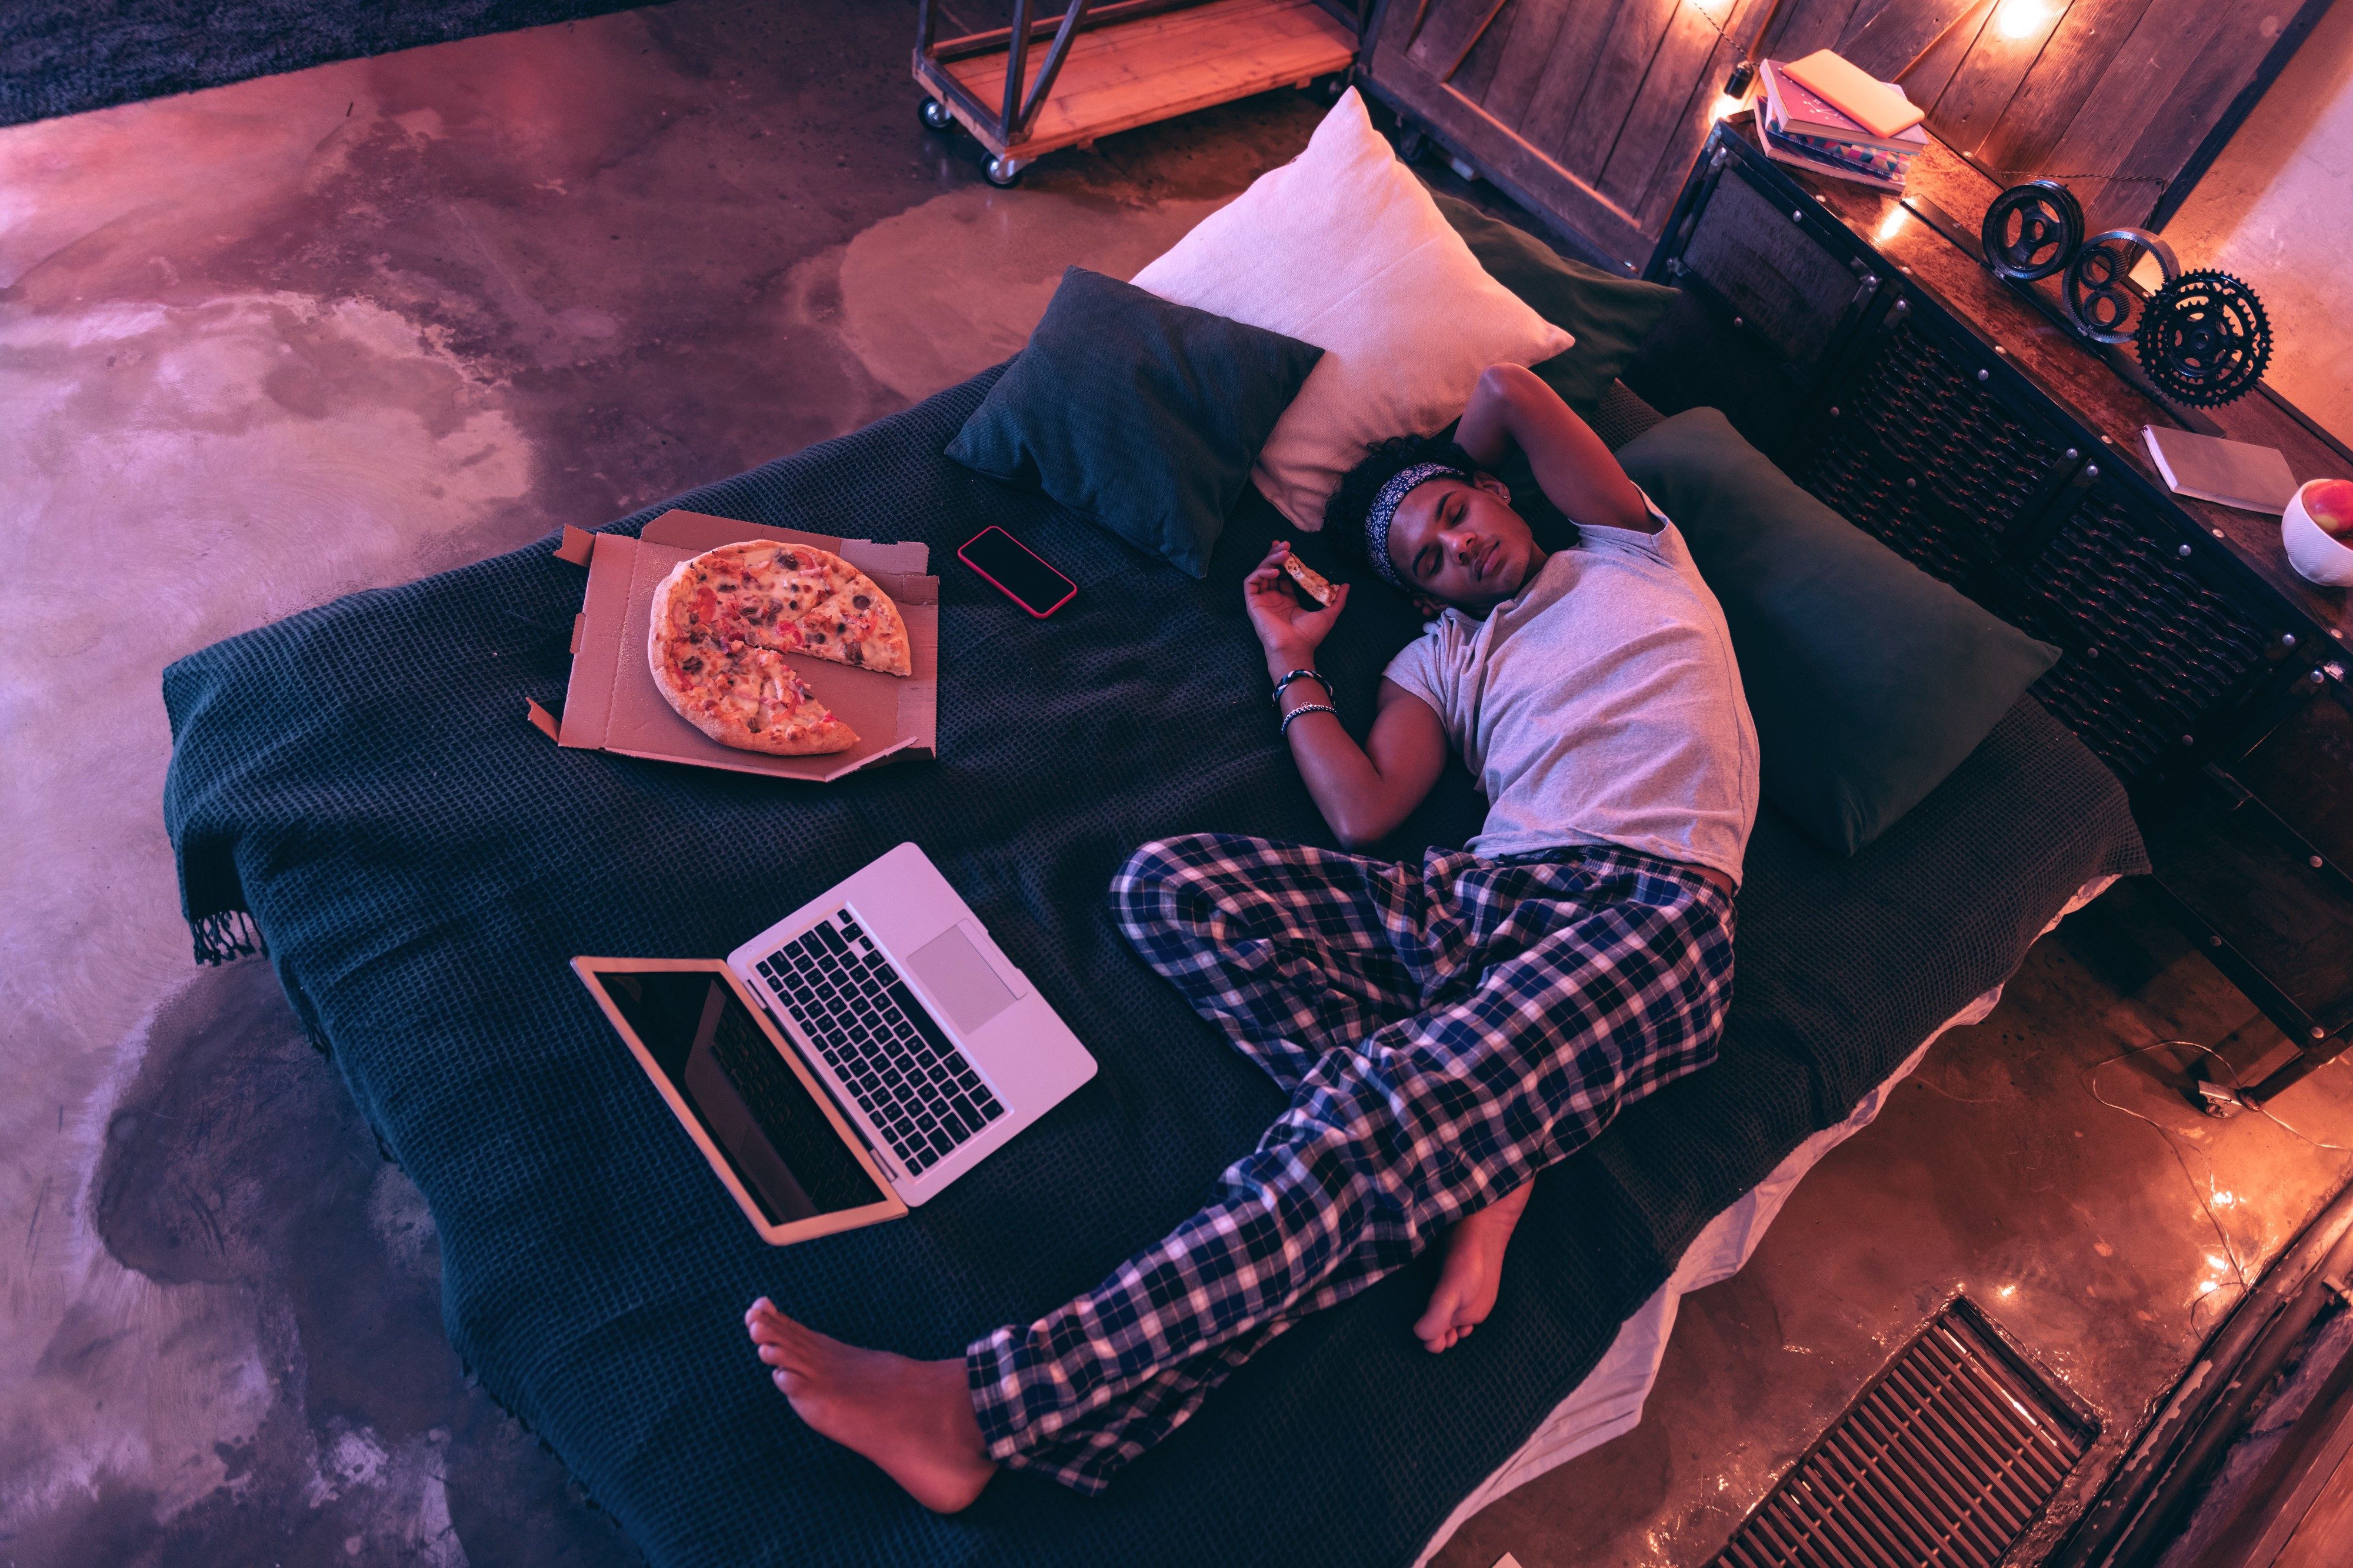 A young guy in checkered pajama trousers falling asleep with a slice of pizza in his hand in bed next to a pizza box and open laptop. He has the itis.